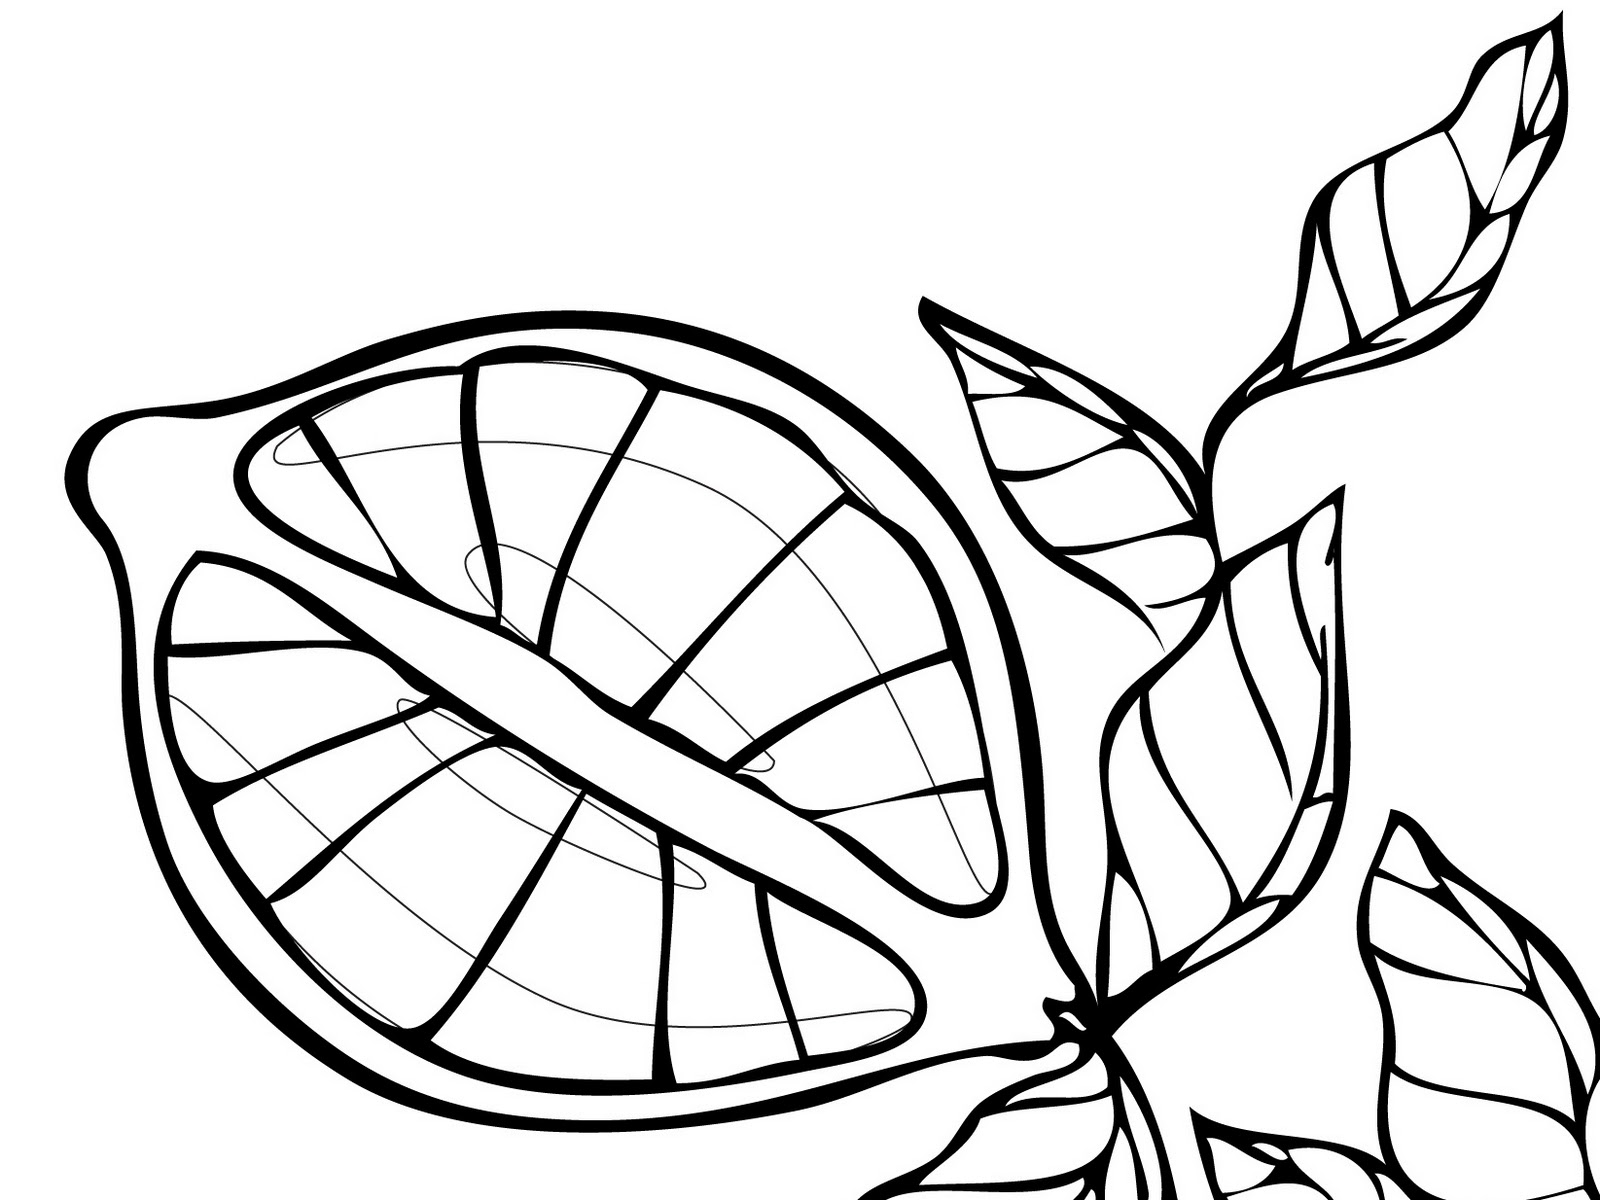 Lemons Fruit Coloring Pages To